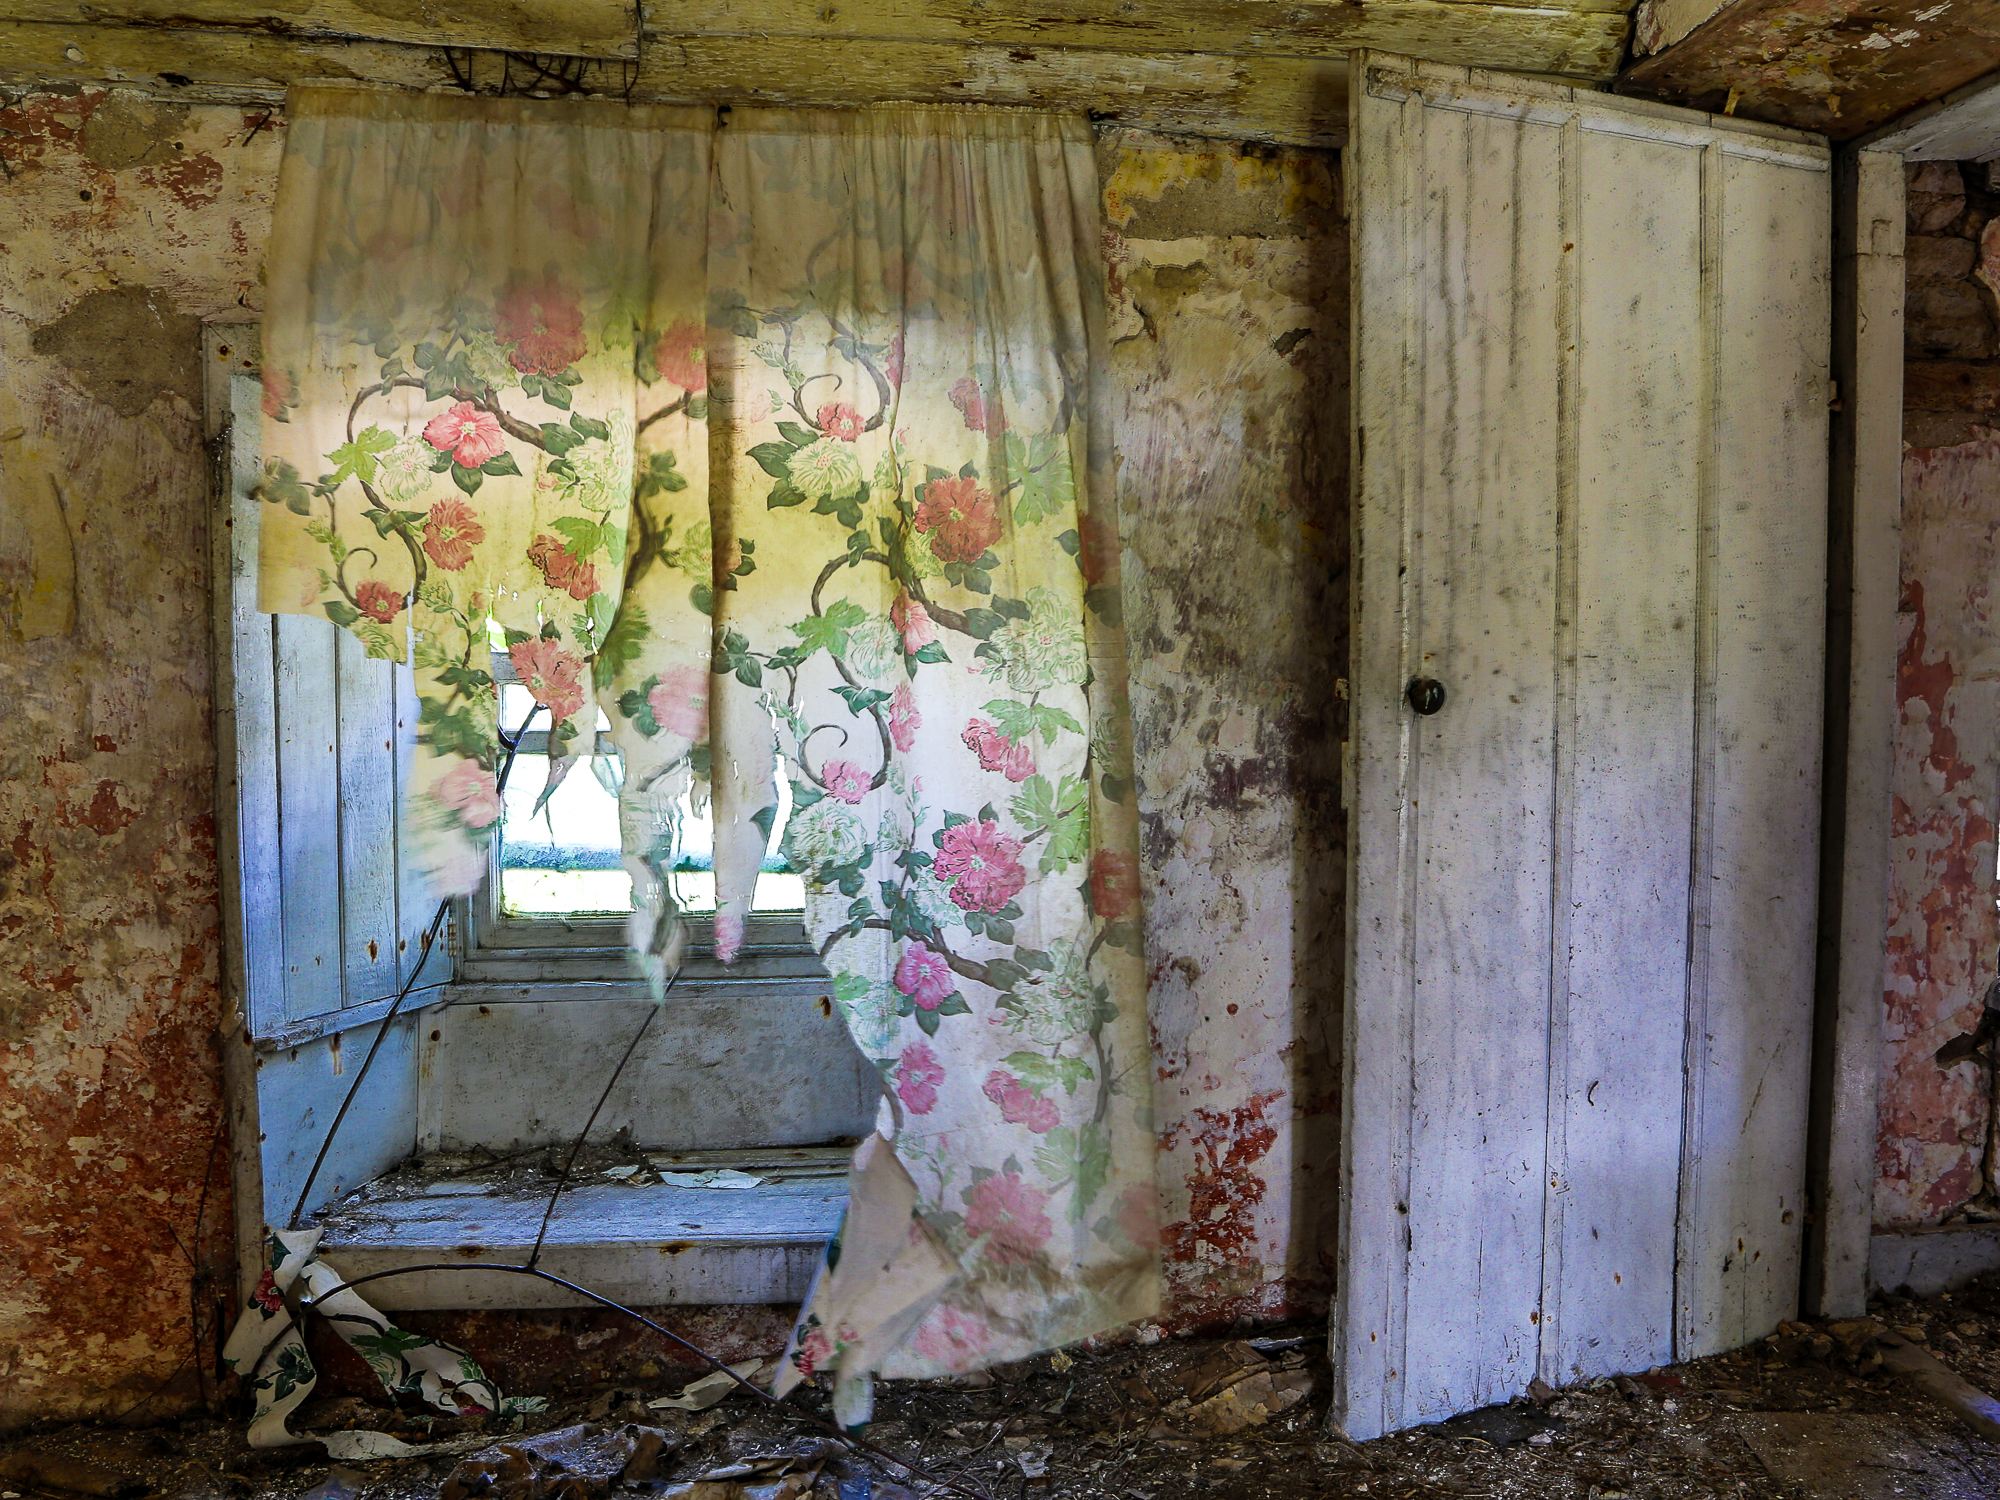 Faded, torn rose curtains billow in a derelict cottage in Ireland